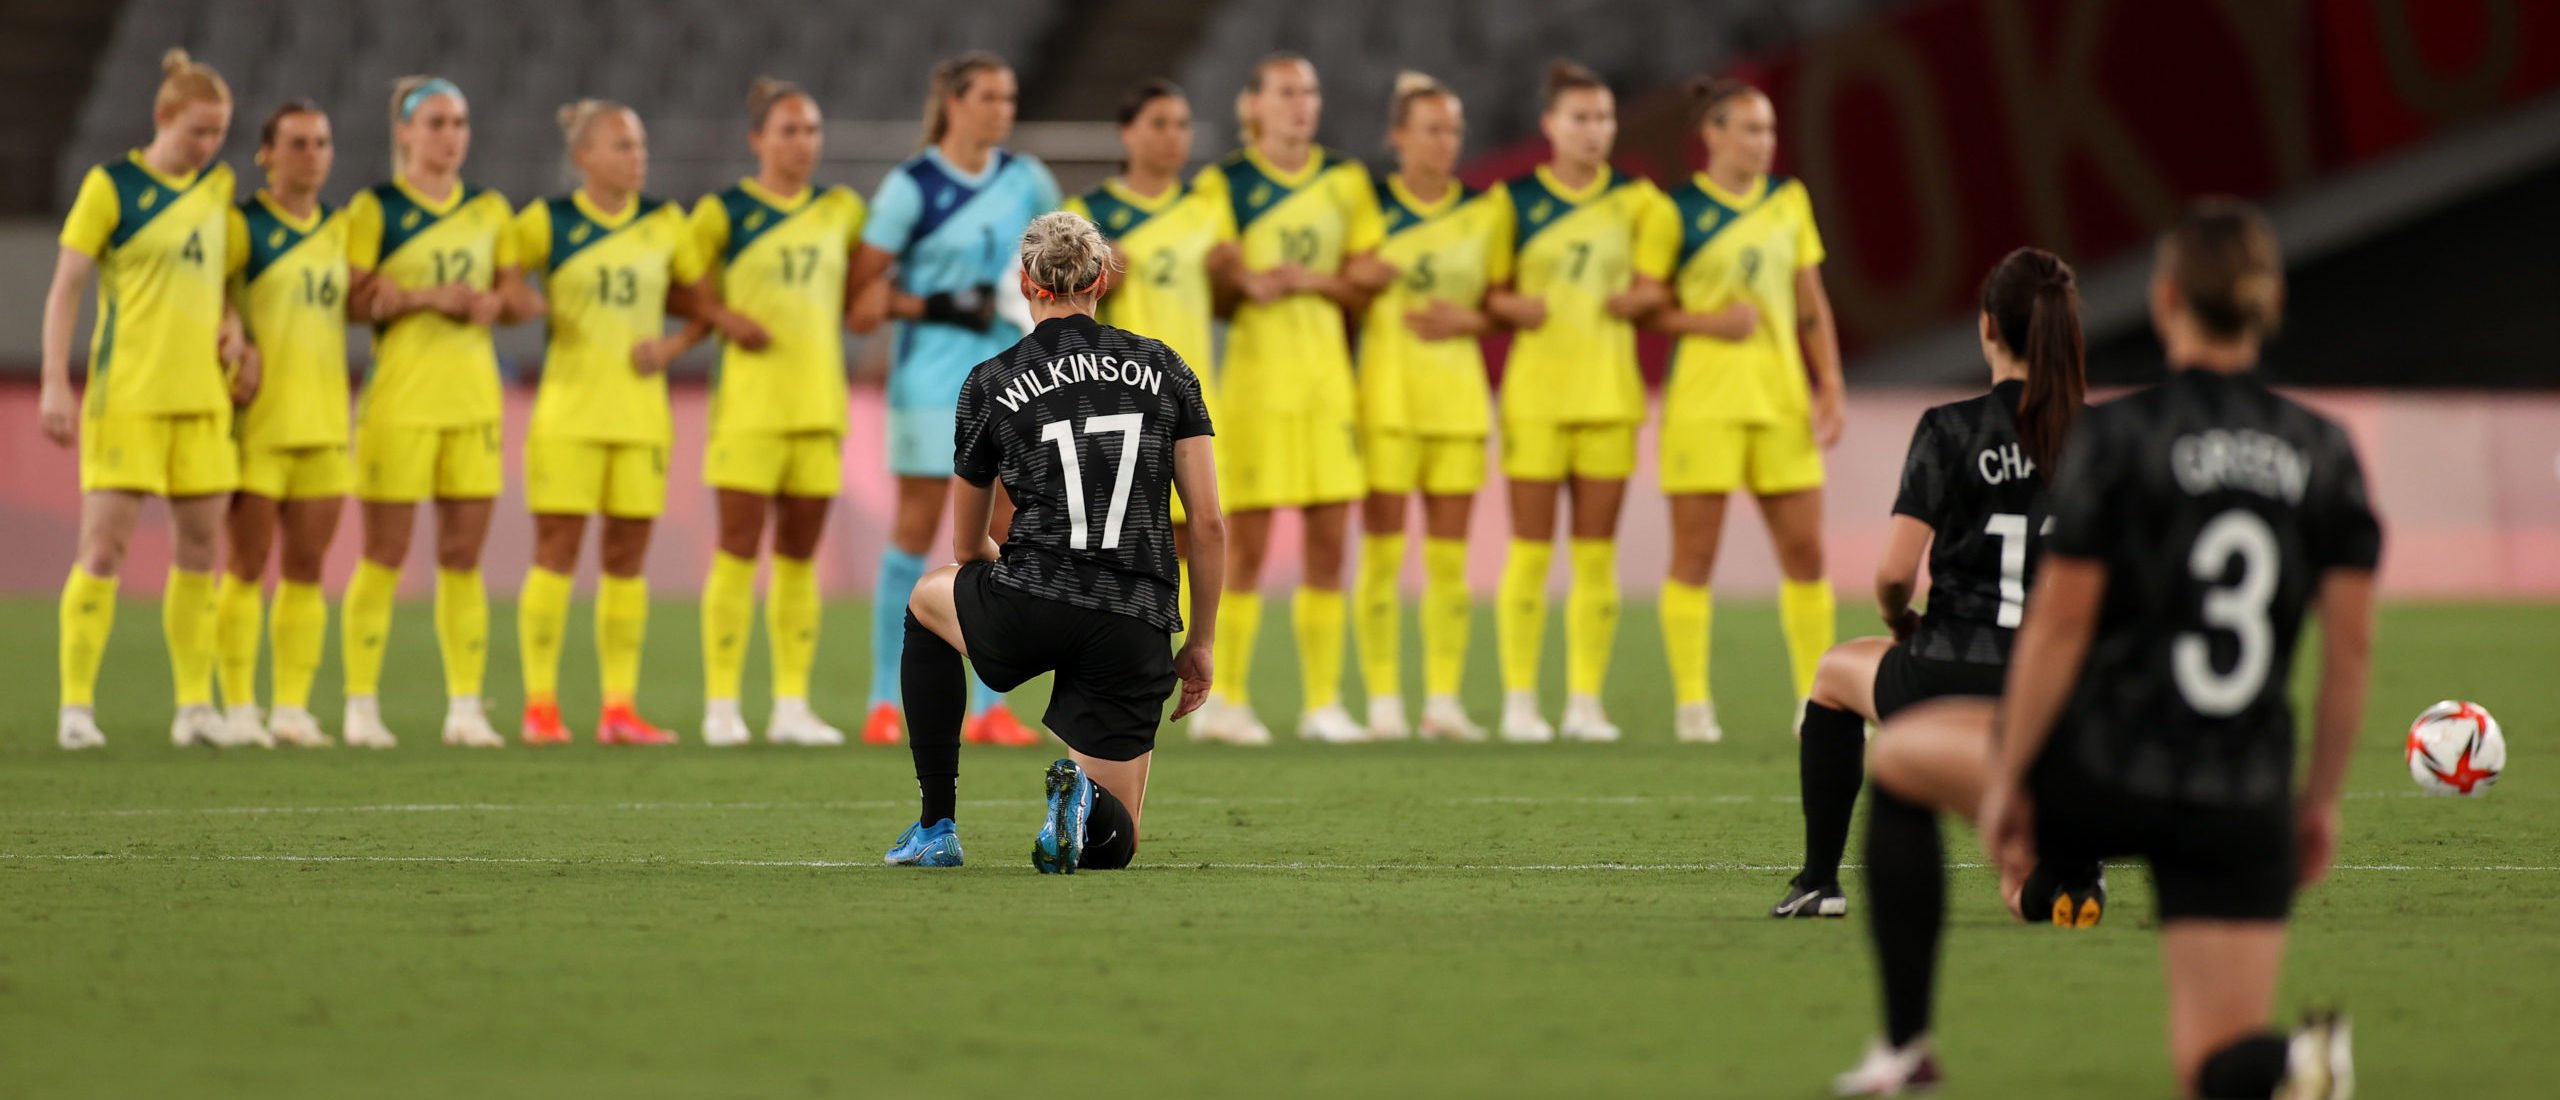 Team New Zealand takes a knee in support of the Black Lives Matter movement as players of Team Australia stand prior to the Women's First Round Group G match between Australia and New Zealand during the Tokyo 2020 Olympic Games at Tokyo Stadium on July 21, 2021 in Chofu, Tokyo, Japan. (Photo by Dan Mullan/Getty Images)